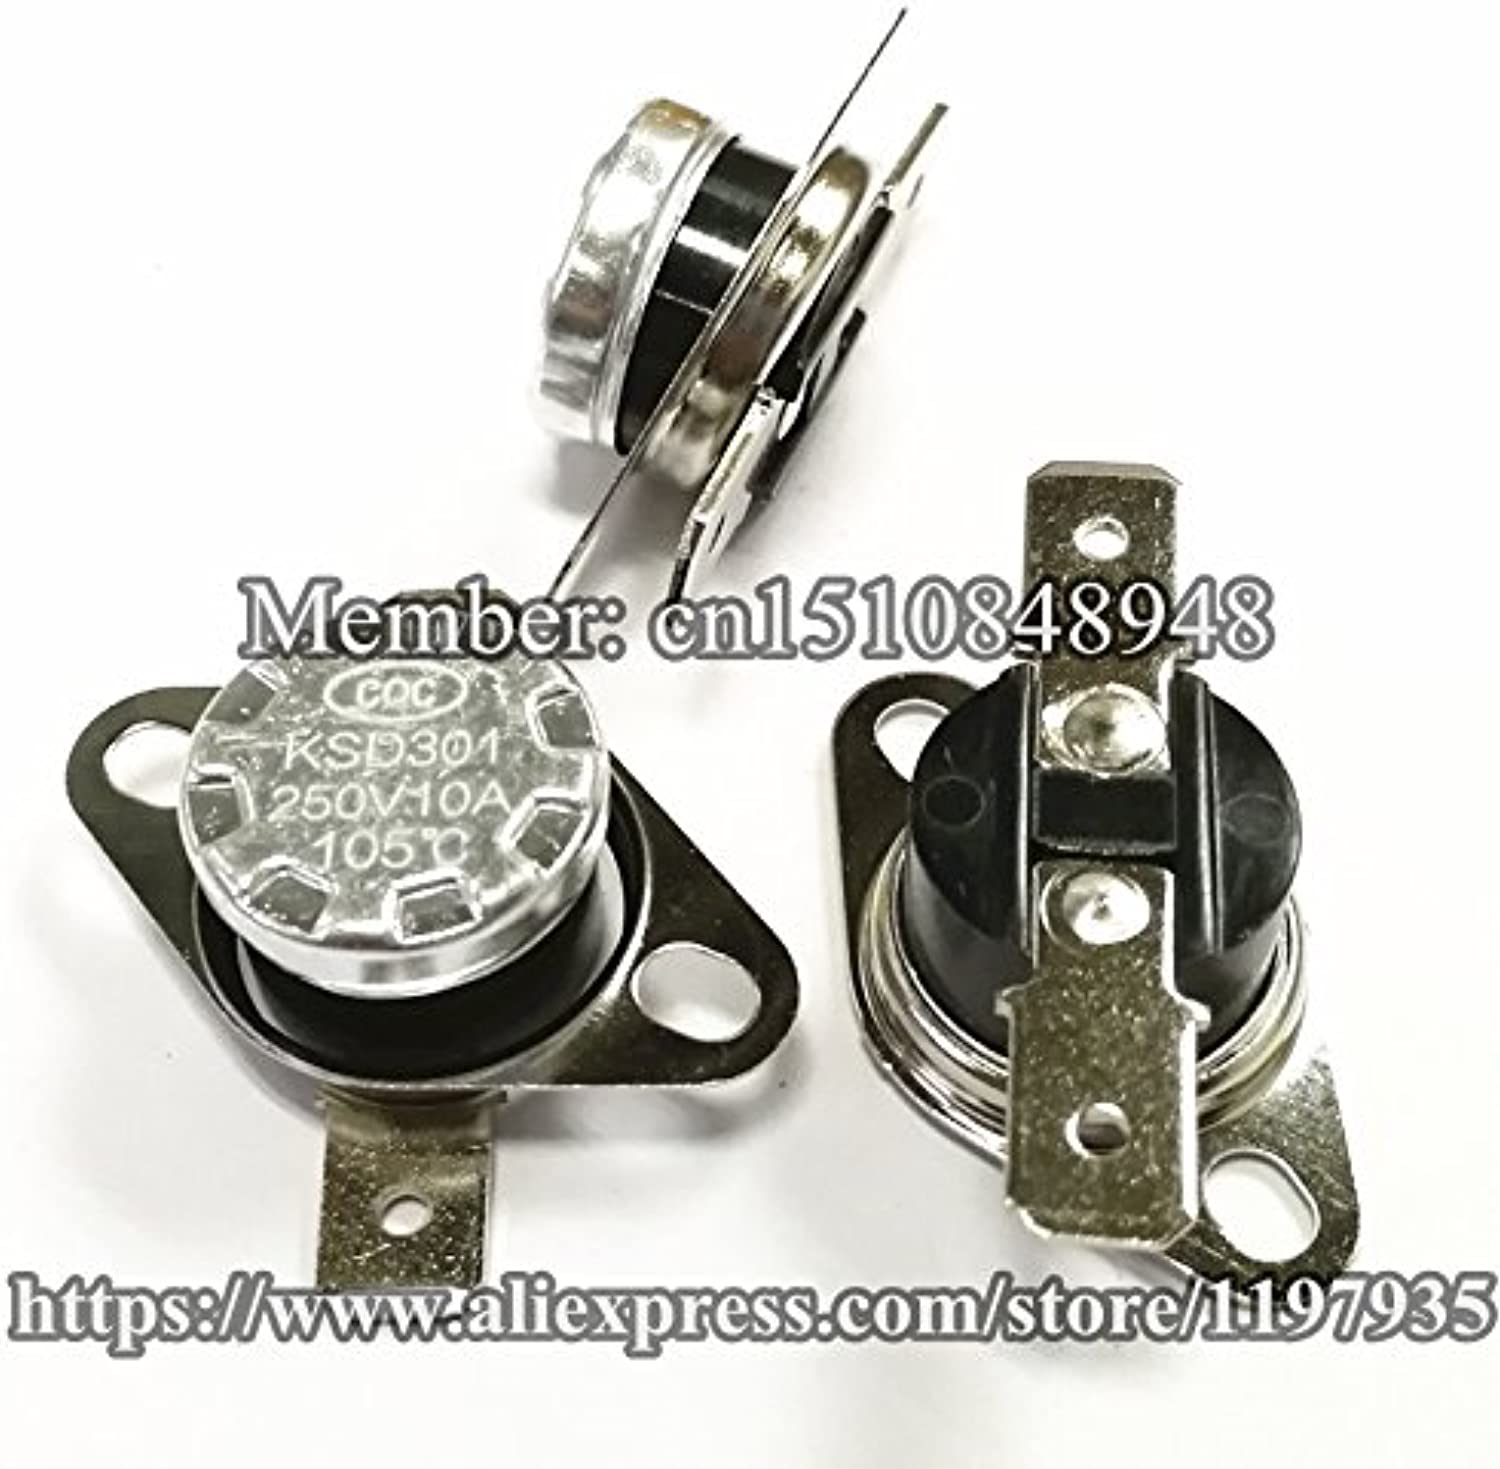 KSD301 Thermostat Temperature Switch 105155 Degrees 250V 10A 105 110 115 120 125 130 135 140 145 150 155 Degrees